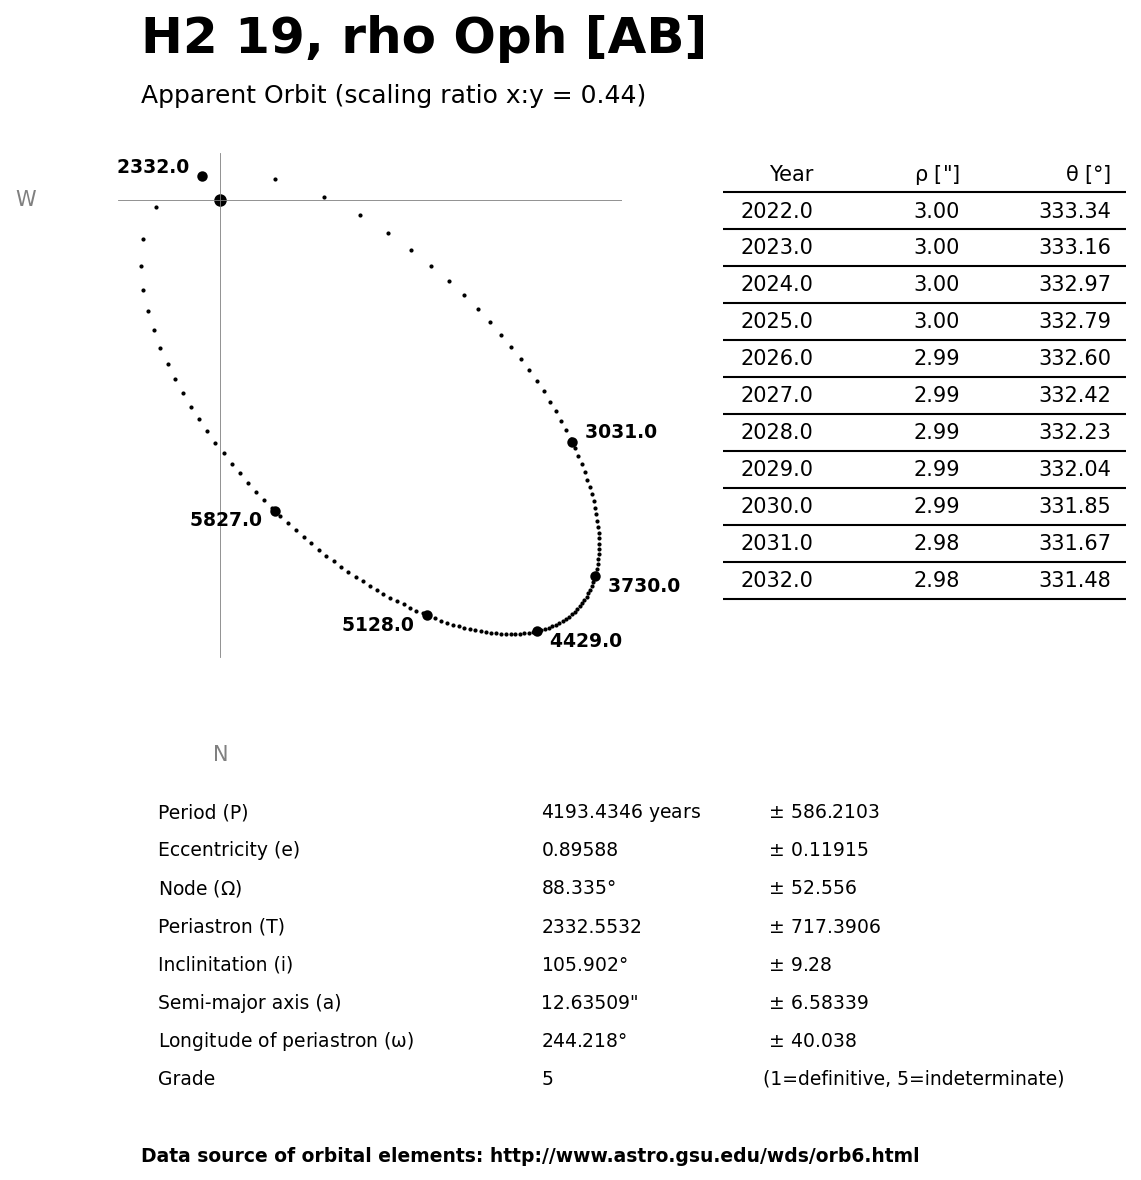 ../images/binary-star-orbits/H2-19-AB-orbit.jpg